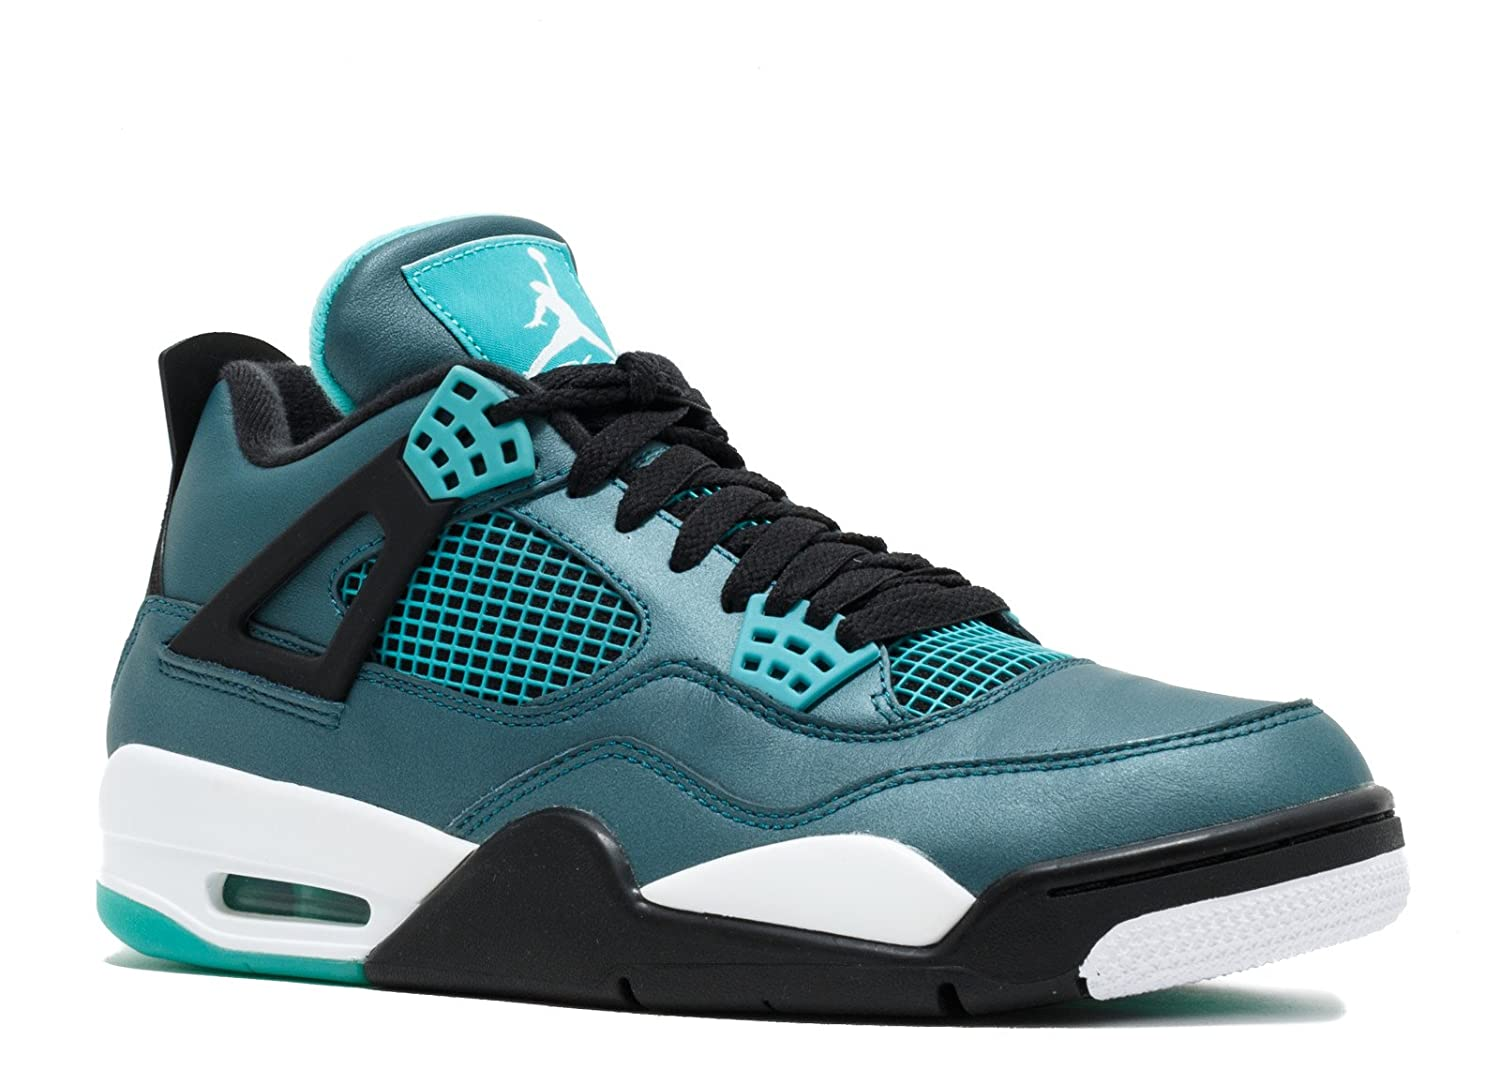 Air Jordan 4 Retro - 308497 117 B00UKDEFU8 8.5 M US|Teal/White-Black